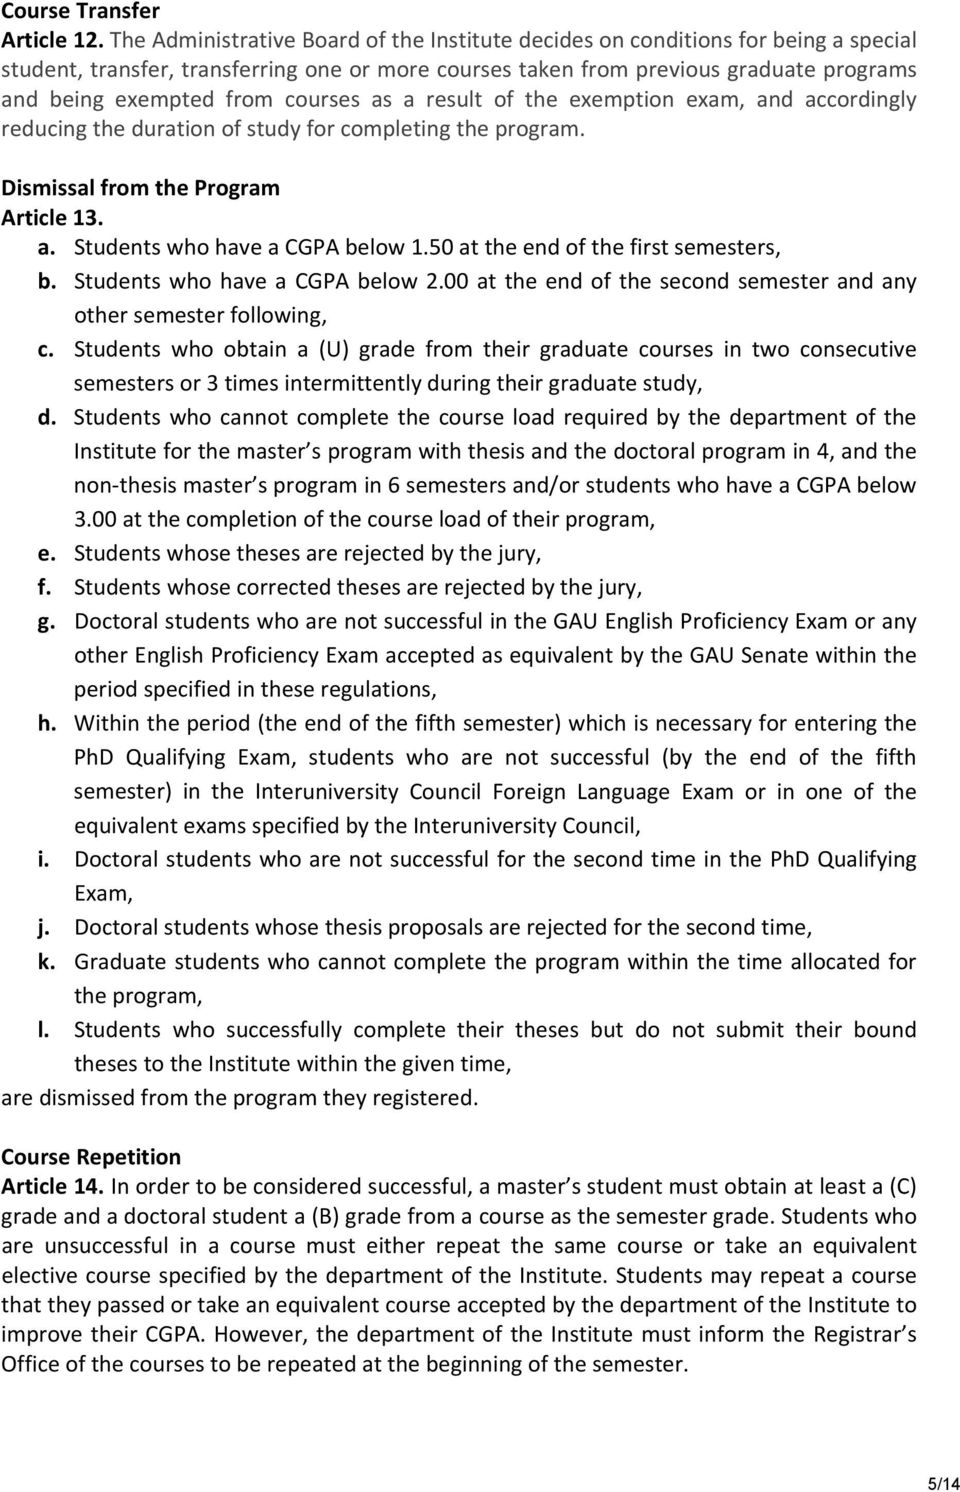 courses as a result of the exemption exam, and accordingly reducing the duration of study for completing the program. Dismissal from the Program Article 13. a. Students who have a CGPA below 1.